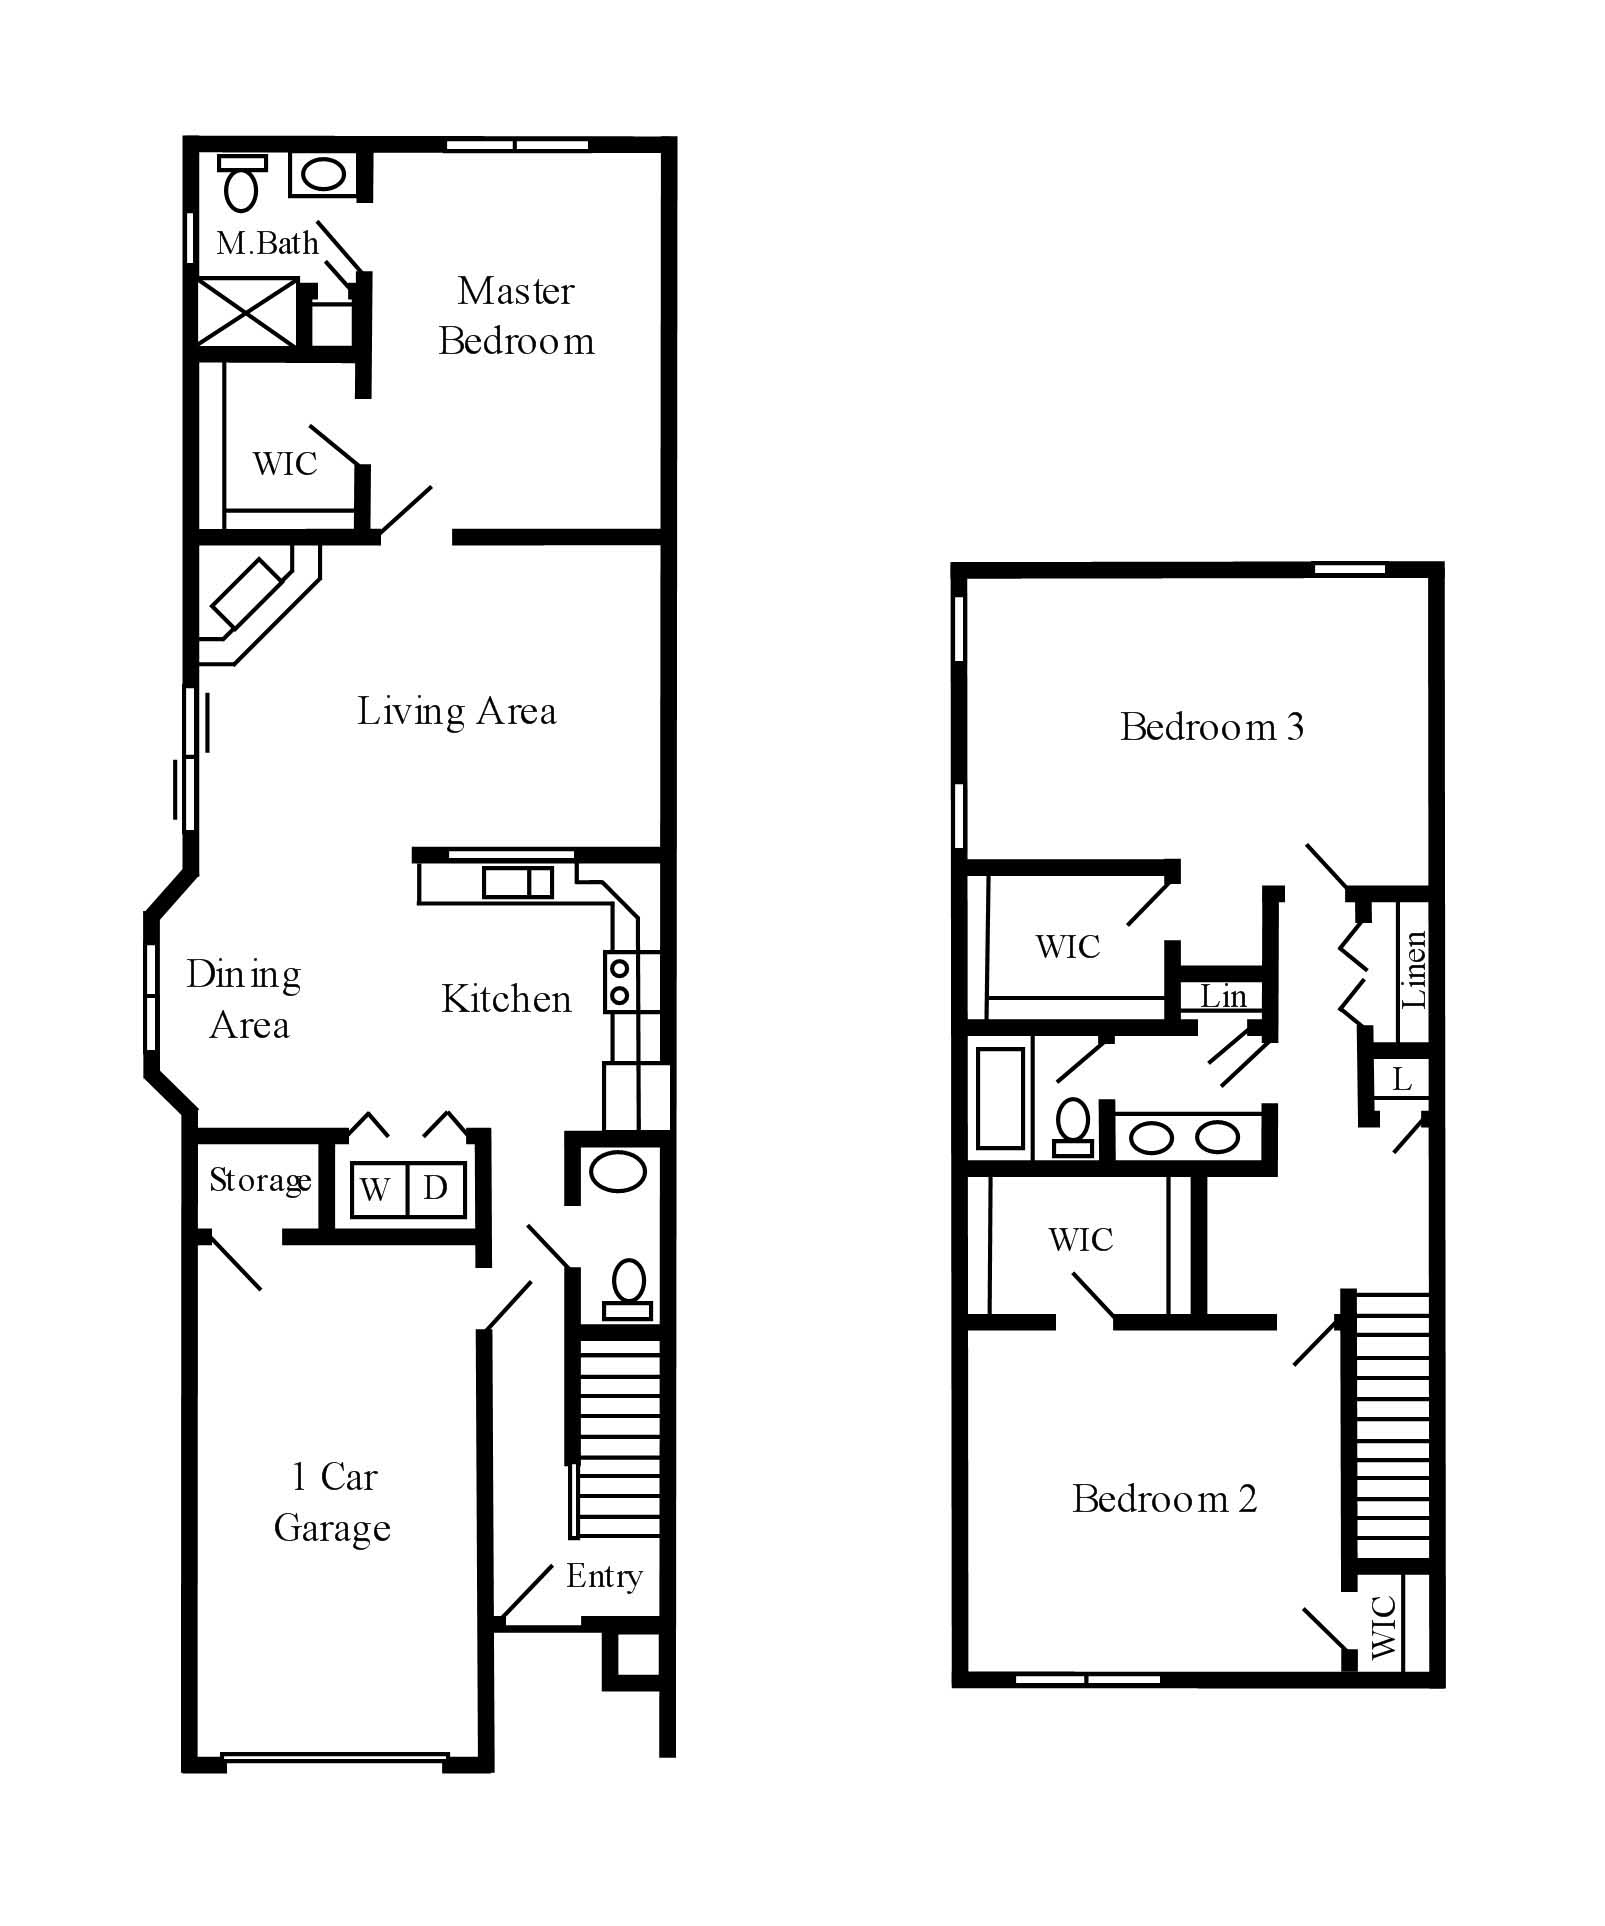 X Ray Darkroom Floor Plan as well The Best House Design  es From The Right Process as well Small Apartment Bedrooms additionally Radiology Floor Plan furthermore Dental Office Design Floor Plan In Color. on chiropractic office floor plans